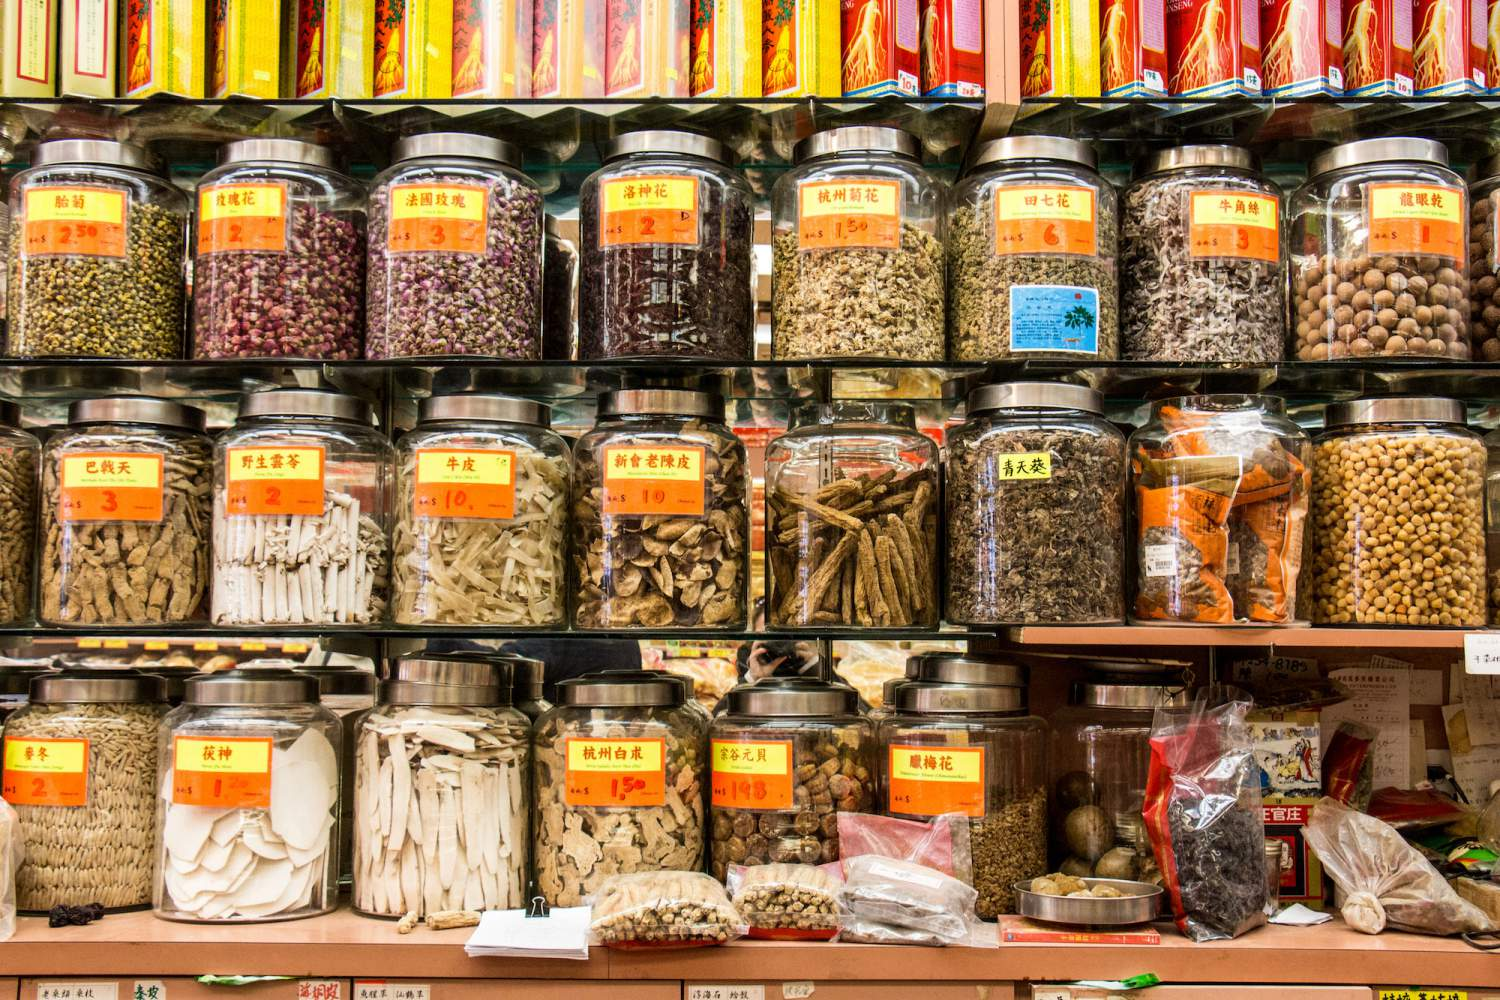 Herb store in Chinatown, Vancouver